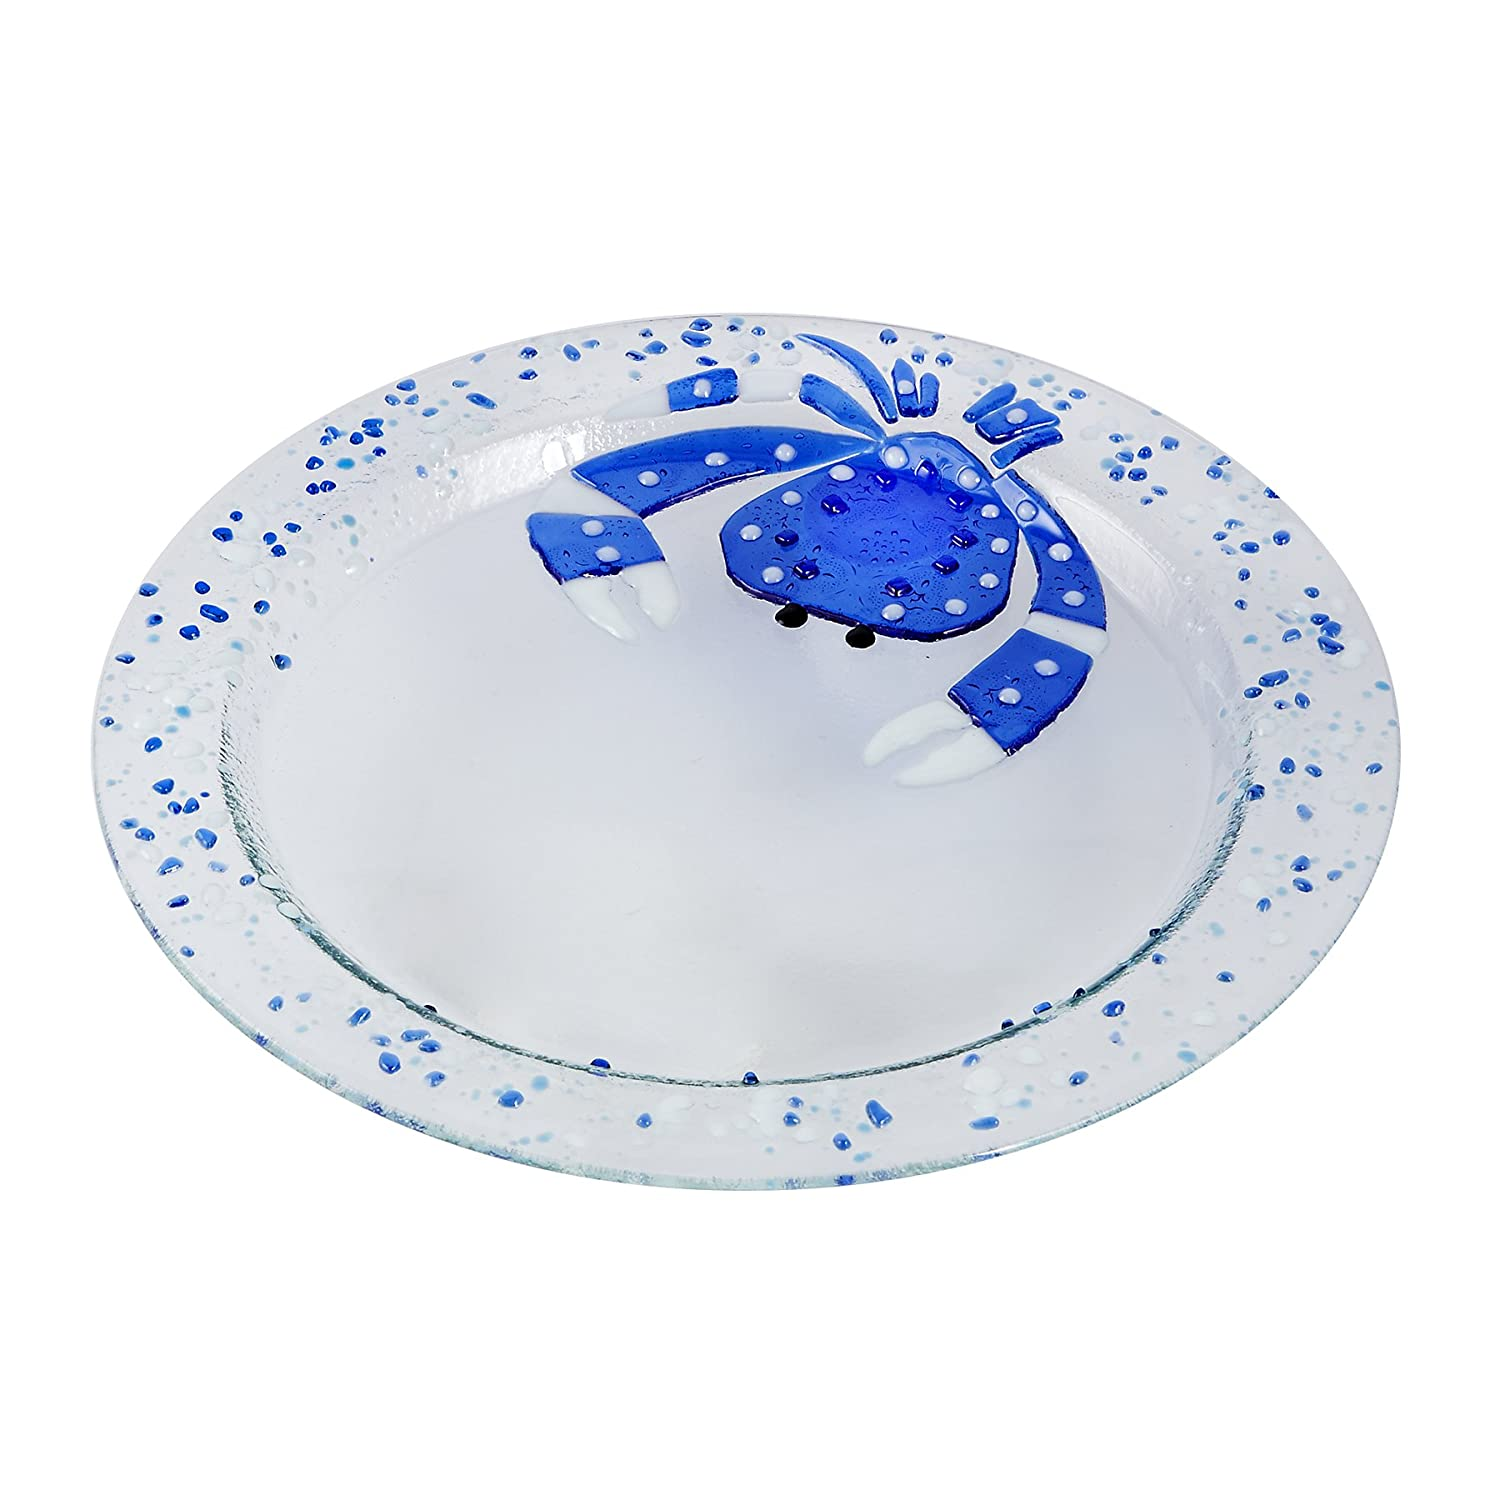 Christmas Tablescape Décor - Mud Pie blue crab square glass serving platter